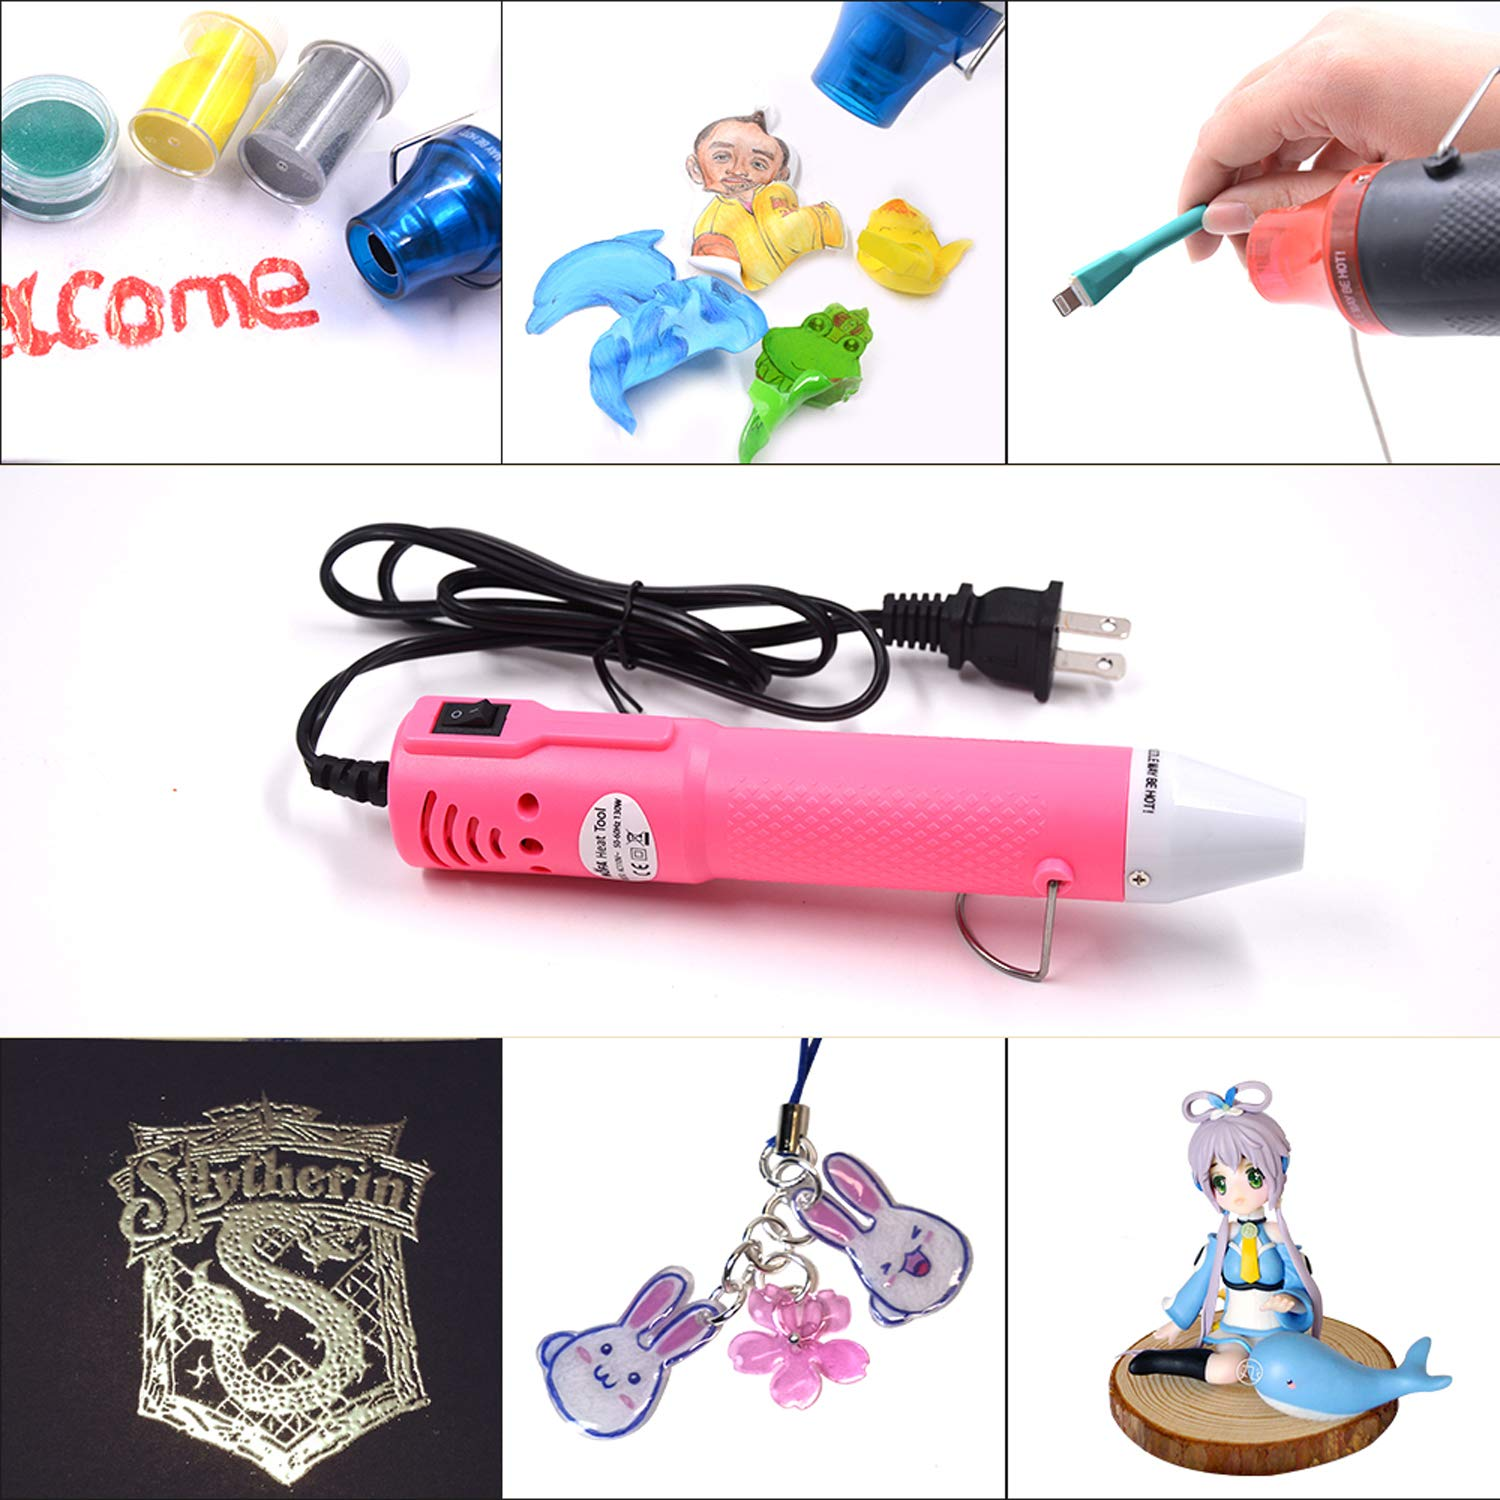 mofa Embossing Heat Pen,Mini Heat Gun,Hot Air Pen Tools Shrink Pen with Stand For DIY Embossing And Drying Paint Multi-Purpose Electric Heating Nozzle 130W 110V Pink,White